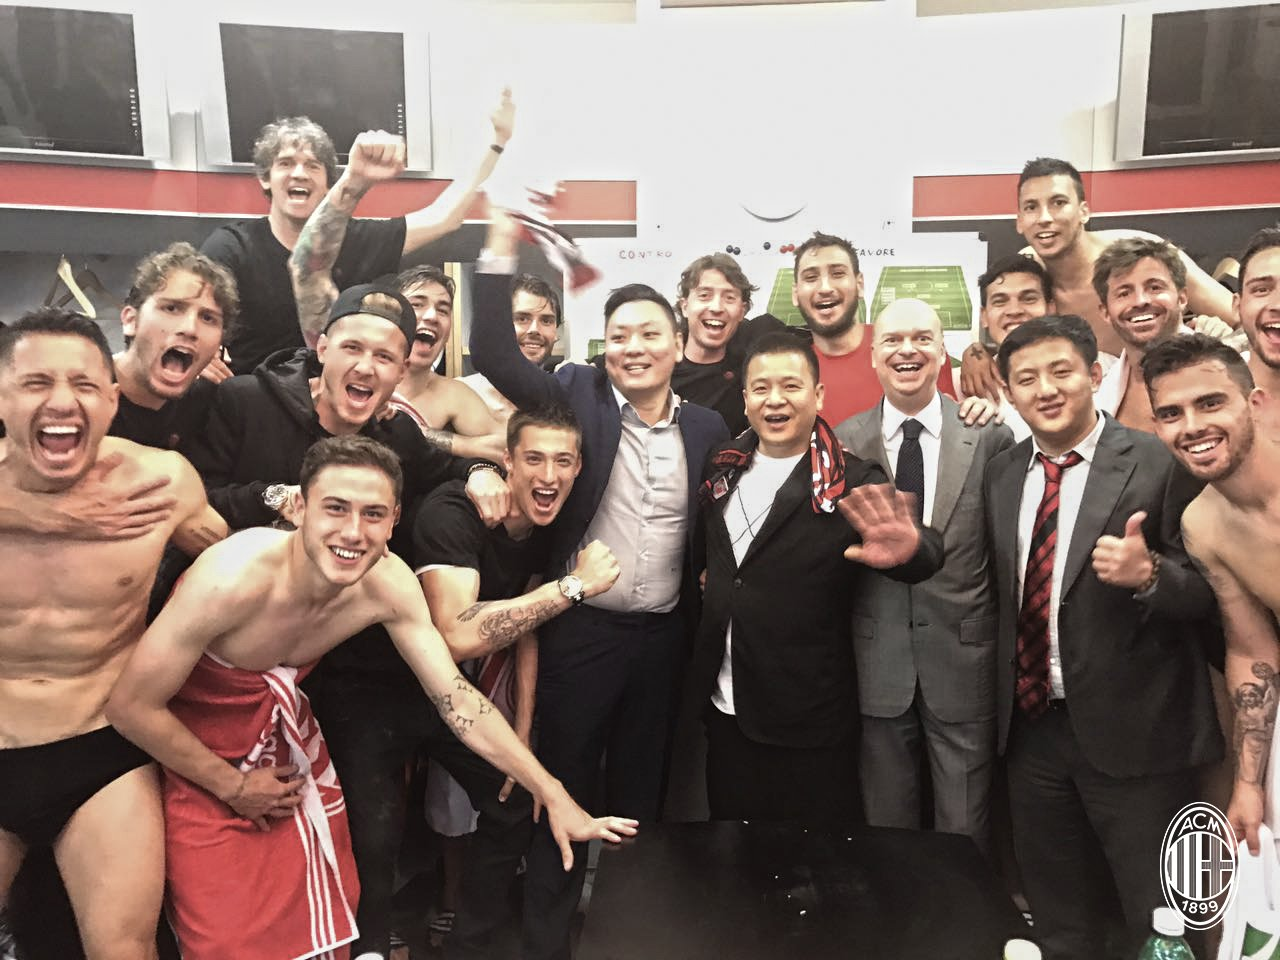 The team along with Yonghong Li, Han Li and Marco Fassone in the locker room after Inter-Milan at Stadio San Siro on the 15th of April 2017. (@acmilan.com)